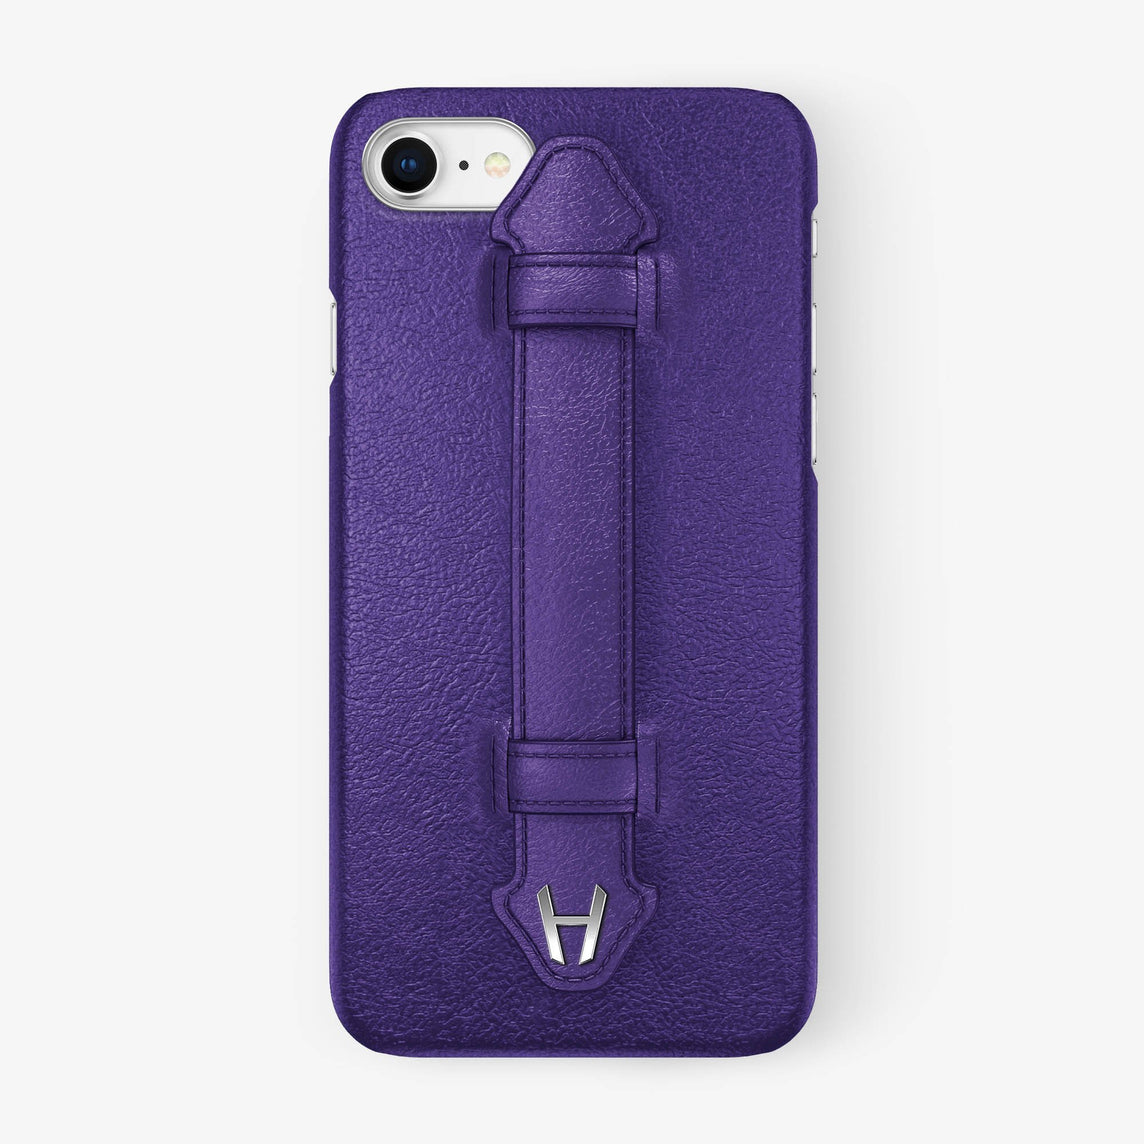 Purple Calfskin iPhone Finger Case for iPhone 7/8 finishing stainless steel - Hadoro Luxury Cases